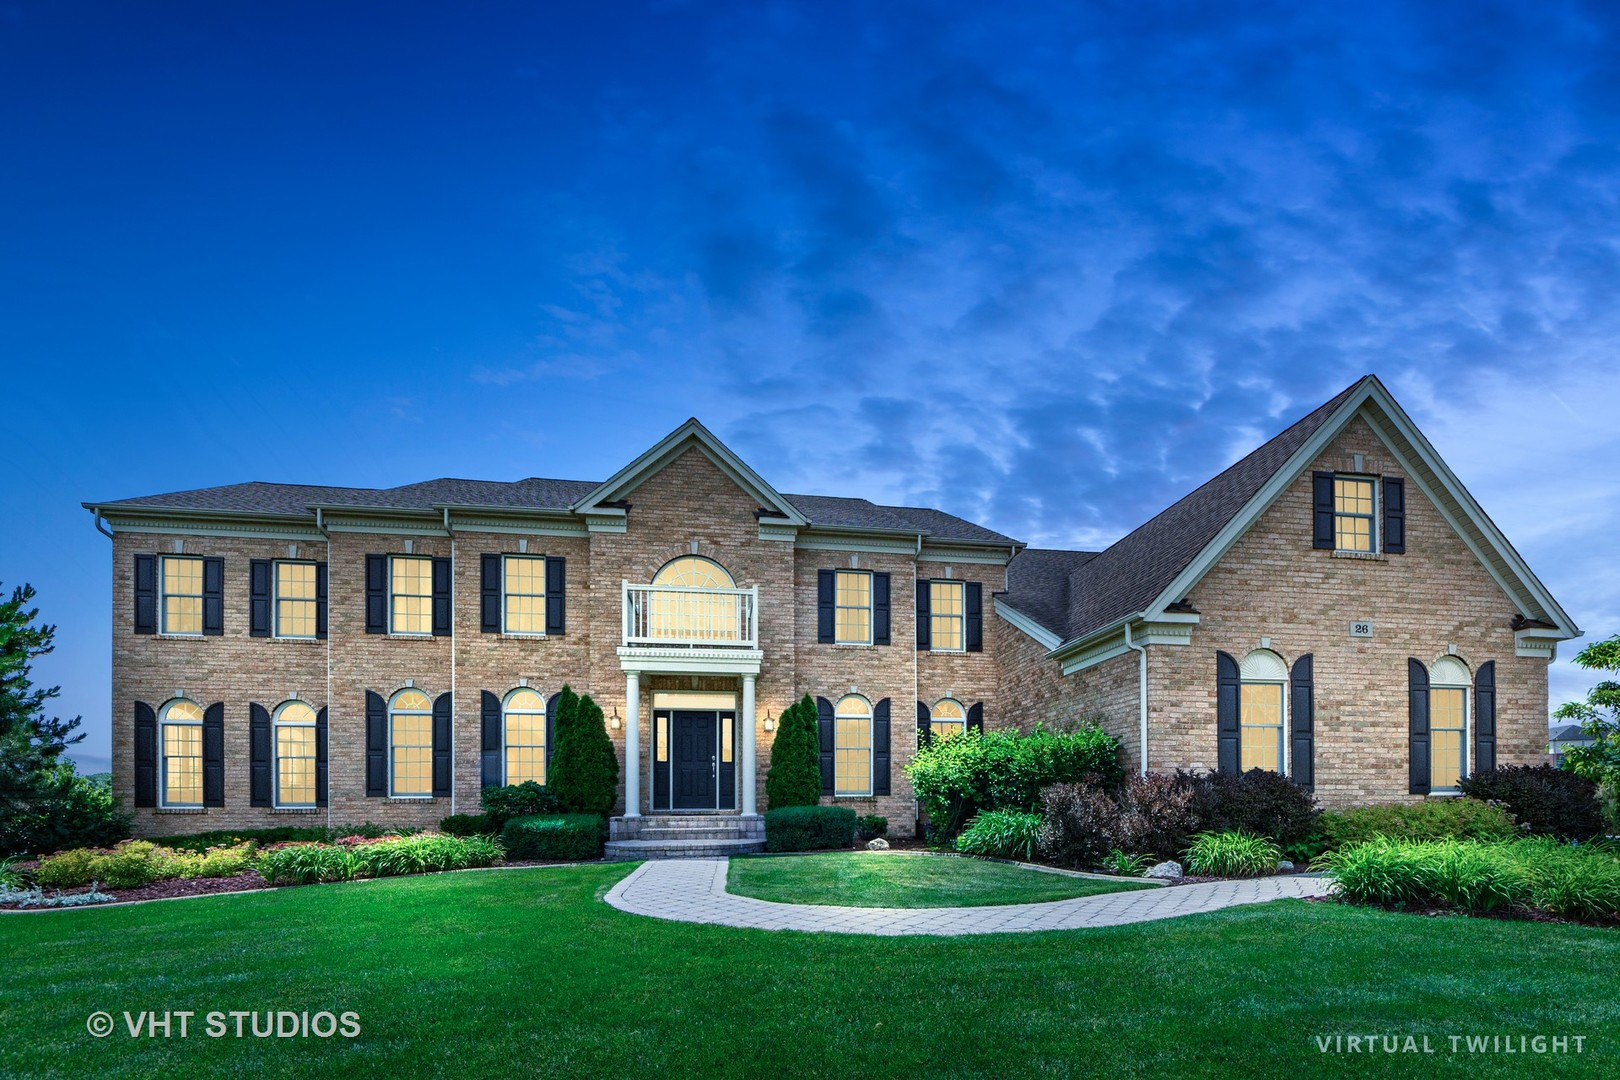 26 Tournament Drive, Hawthorn Woods, Illinois 60047